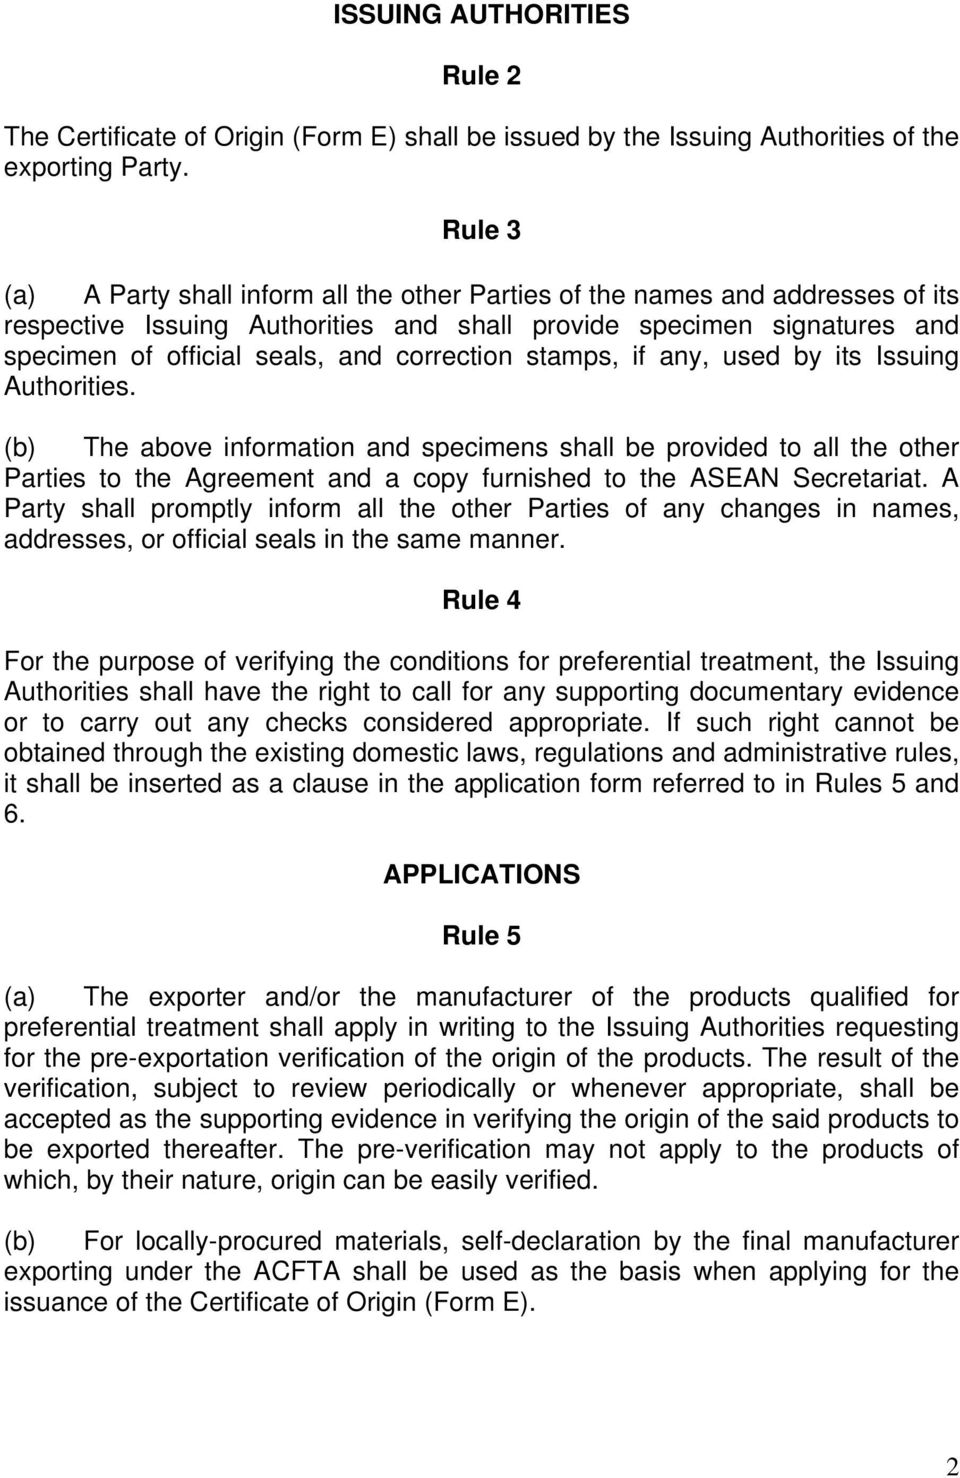 Appendix 1 Attachment A Revised Operational Certification Procedures